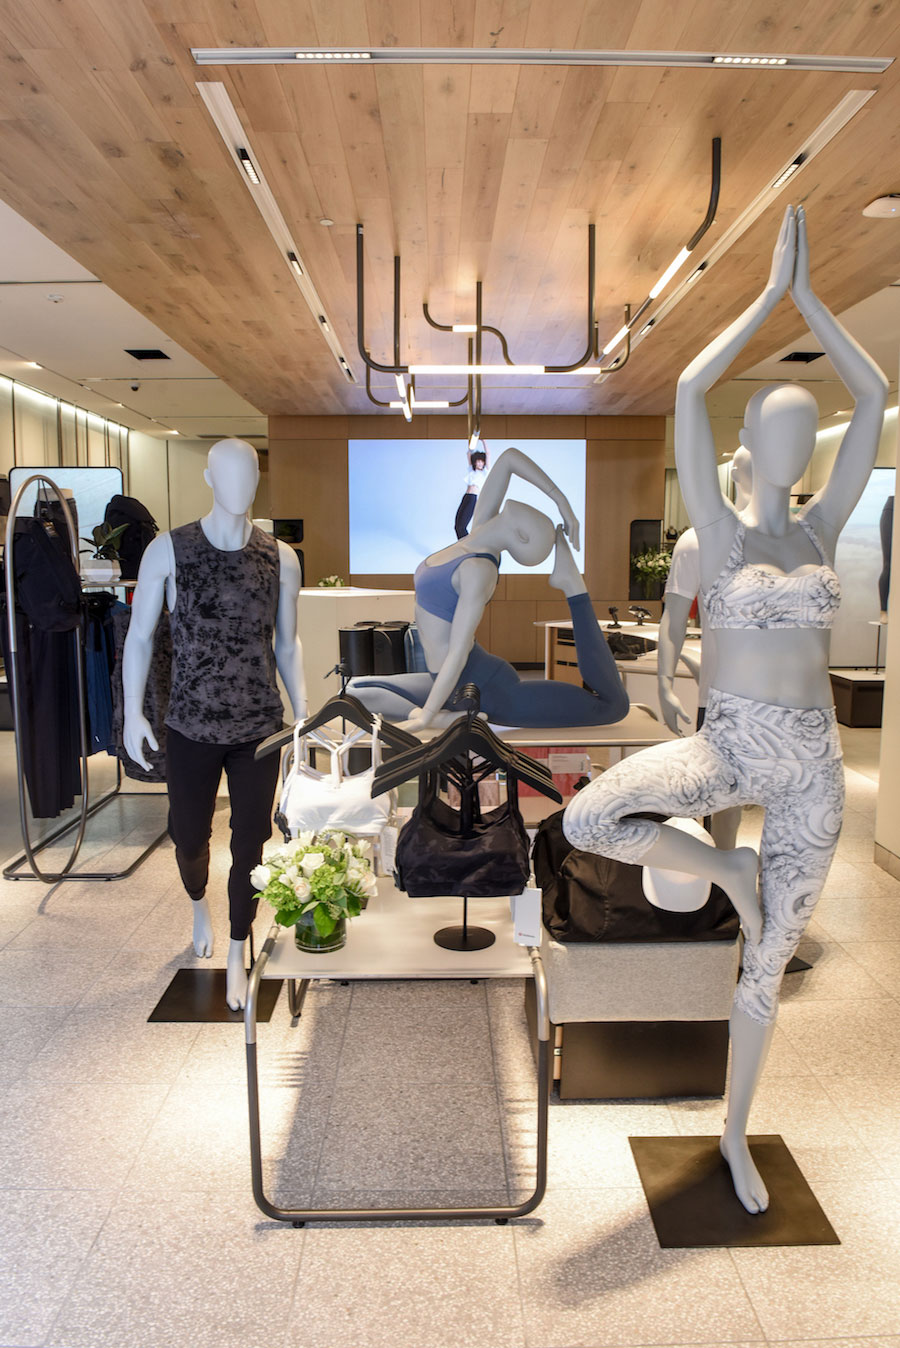 The mannequins at the new store are in more active positions than traditional mannequins.